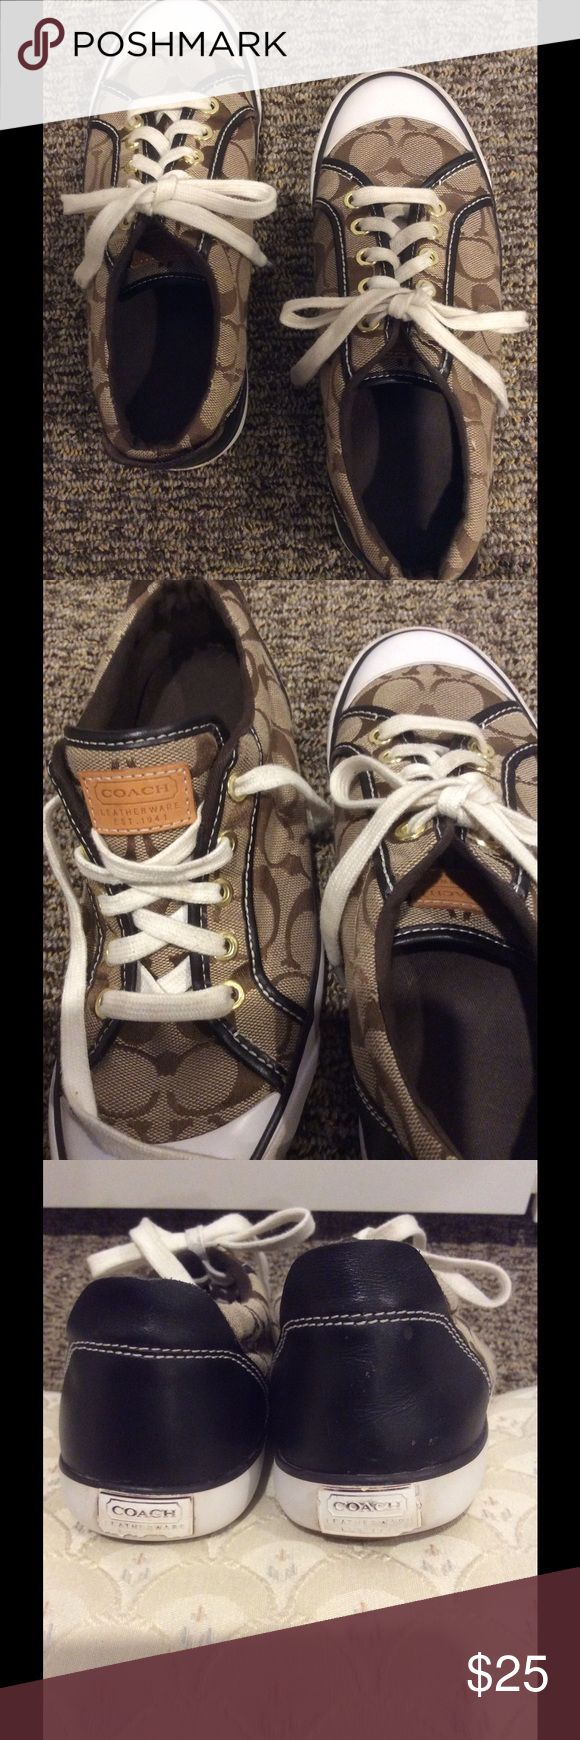 Coach tennis shoes! Nice Coach tennis shoes! These have been loved but are in good condition. Back labels peeling a bit and some scuffing on front of toes (see pics). Could be loved a lot more!! ❤😊 Coach Shoes Sneakers